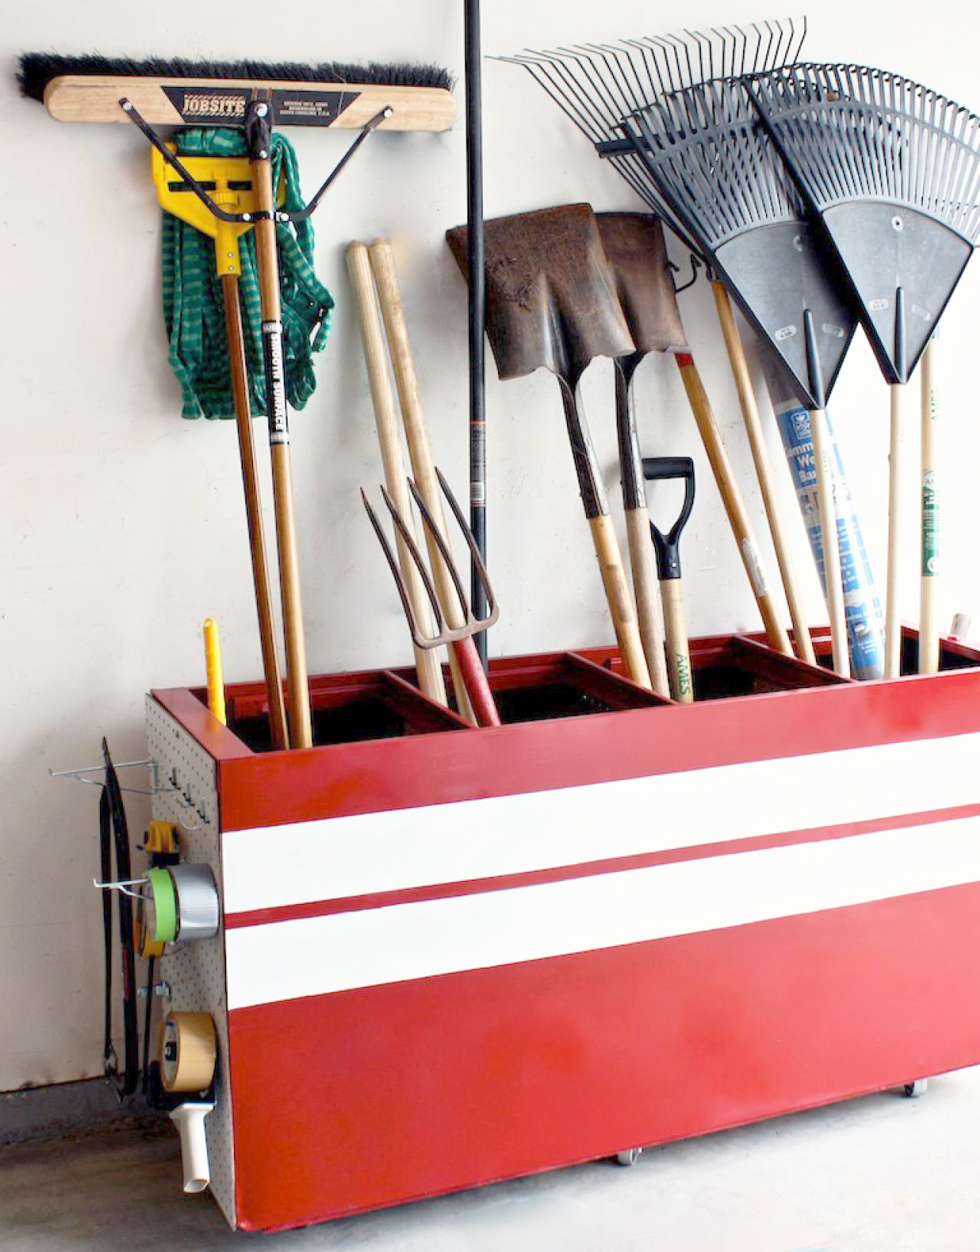 Red filing cabinet turned rolling tool storage cart